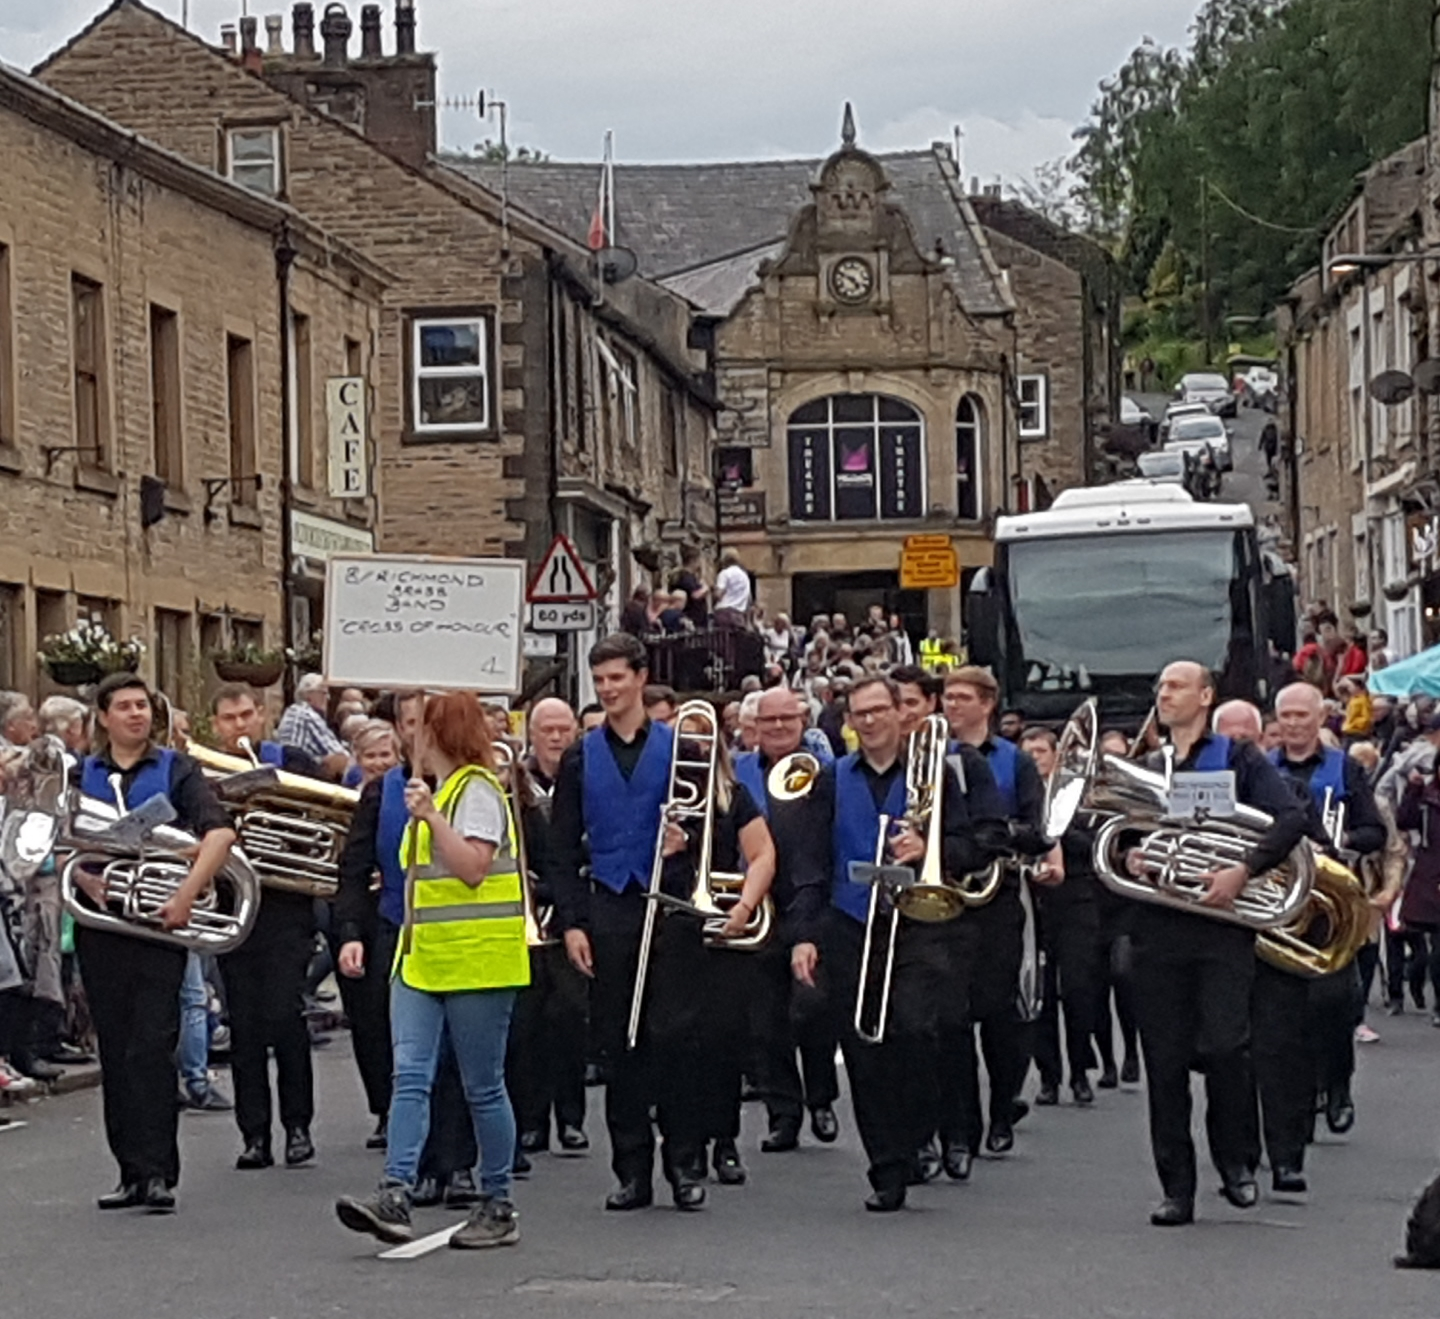 Richmond Brass Band marching through Delph